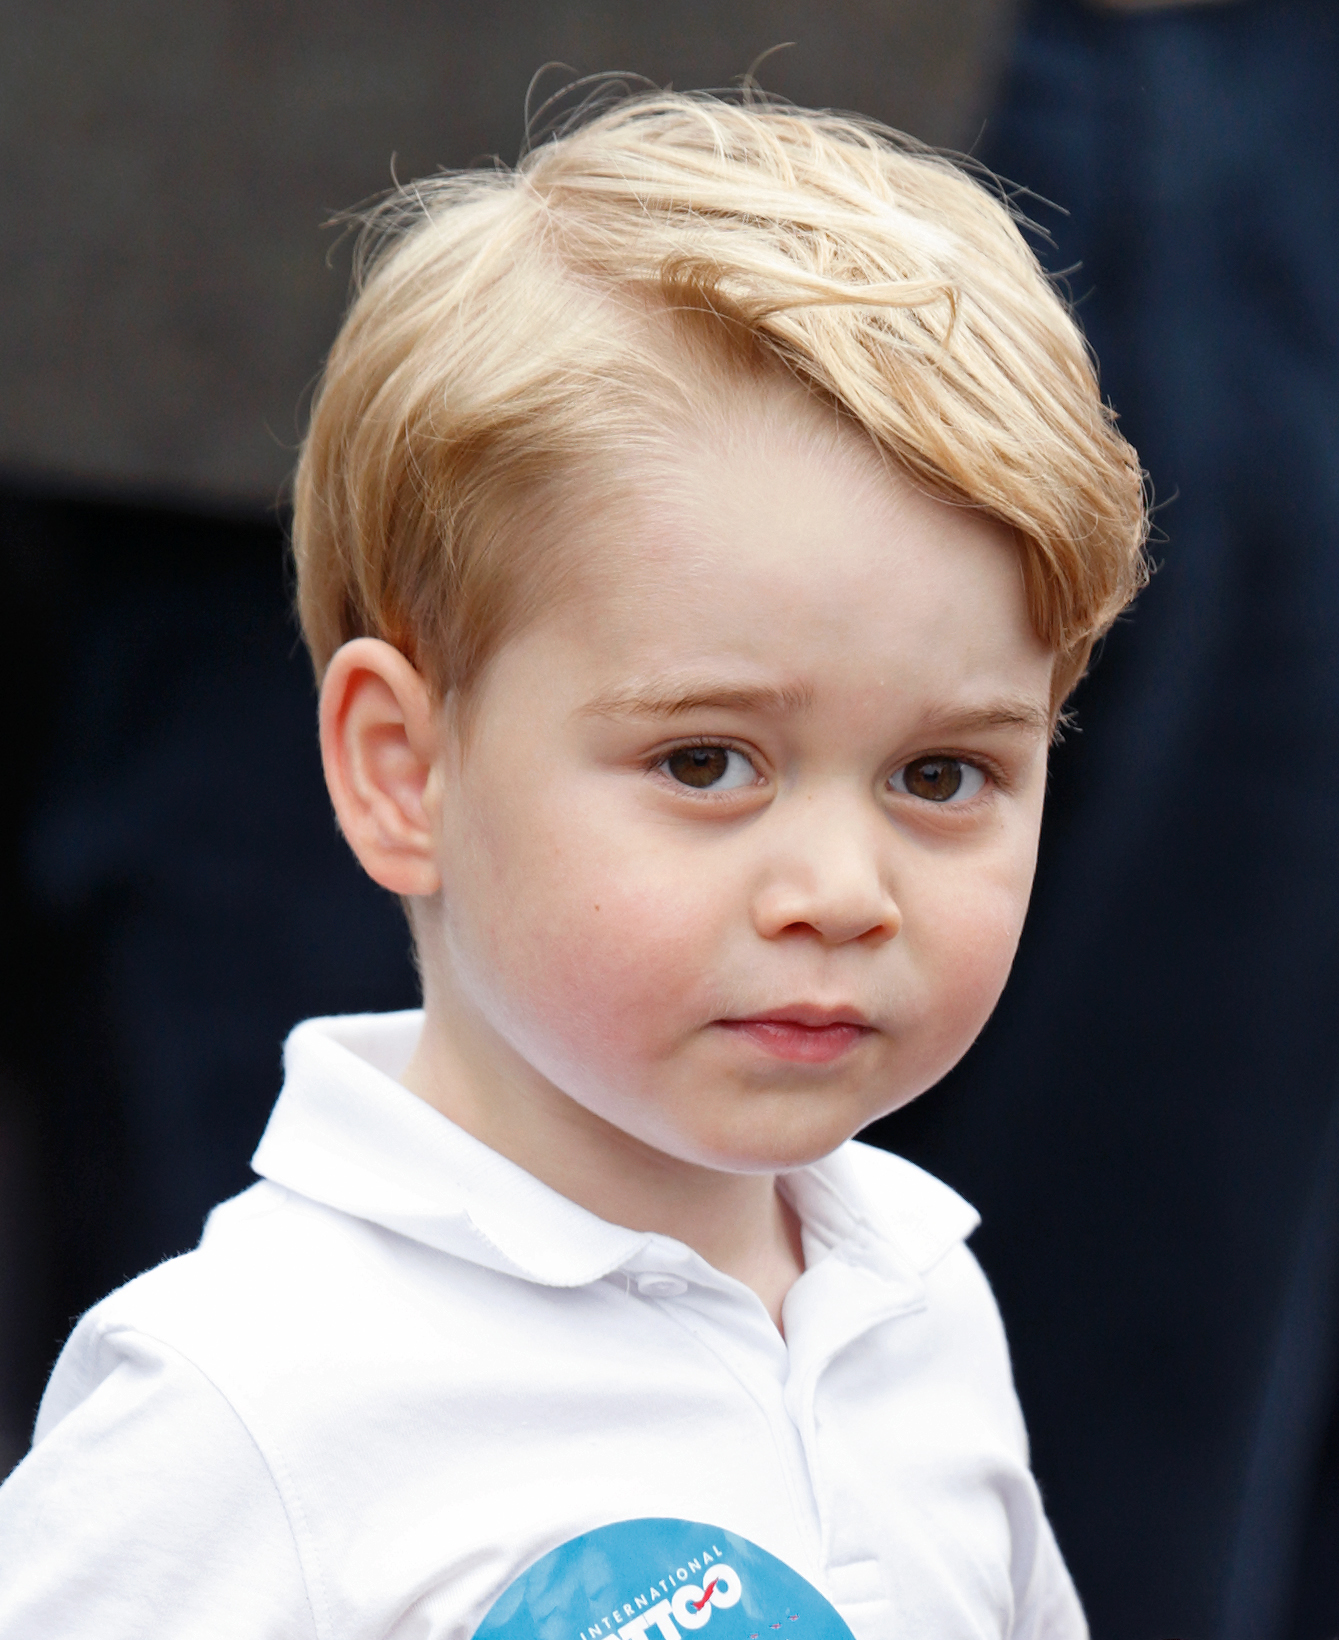 prince-george-of-cambridge-kate-middleton